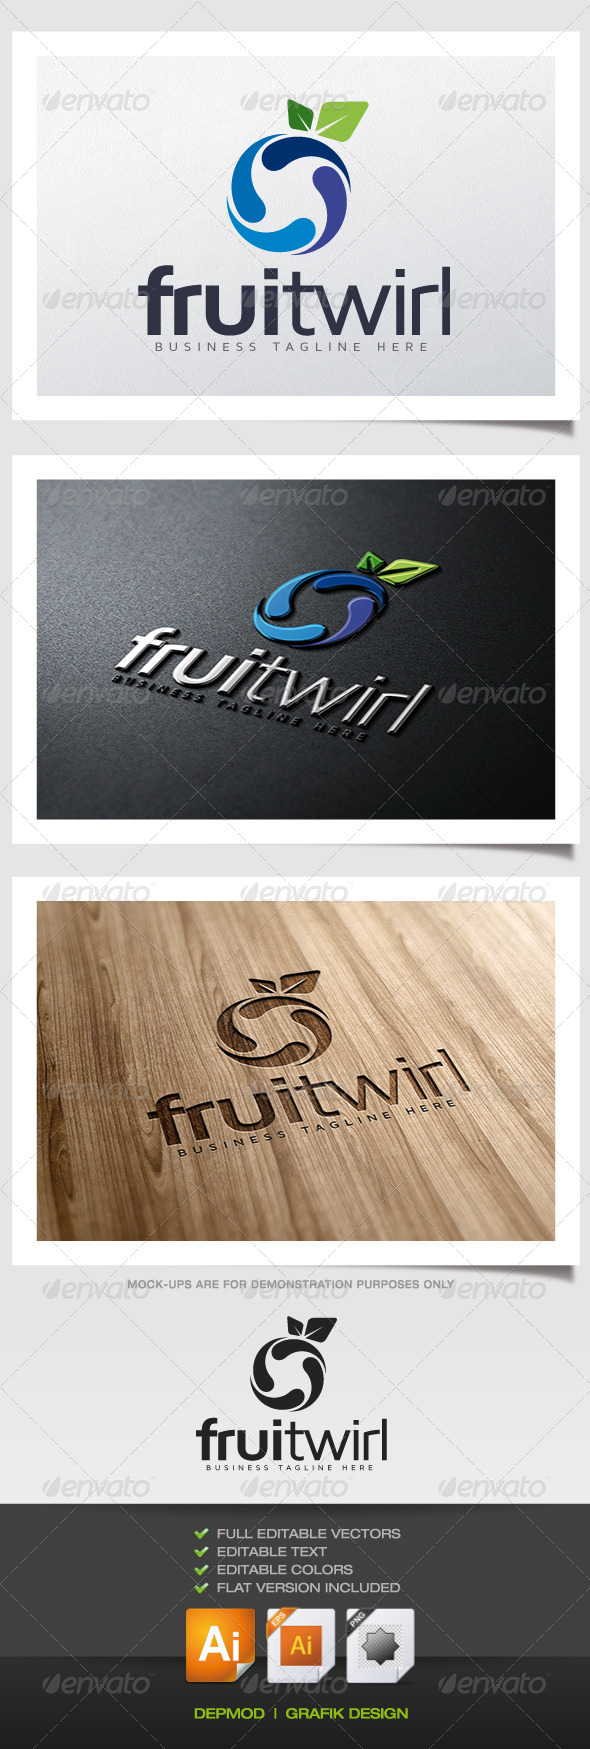 GraphicRiver Fruitwirl Logo 5639426